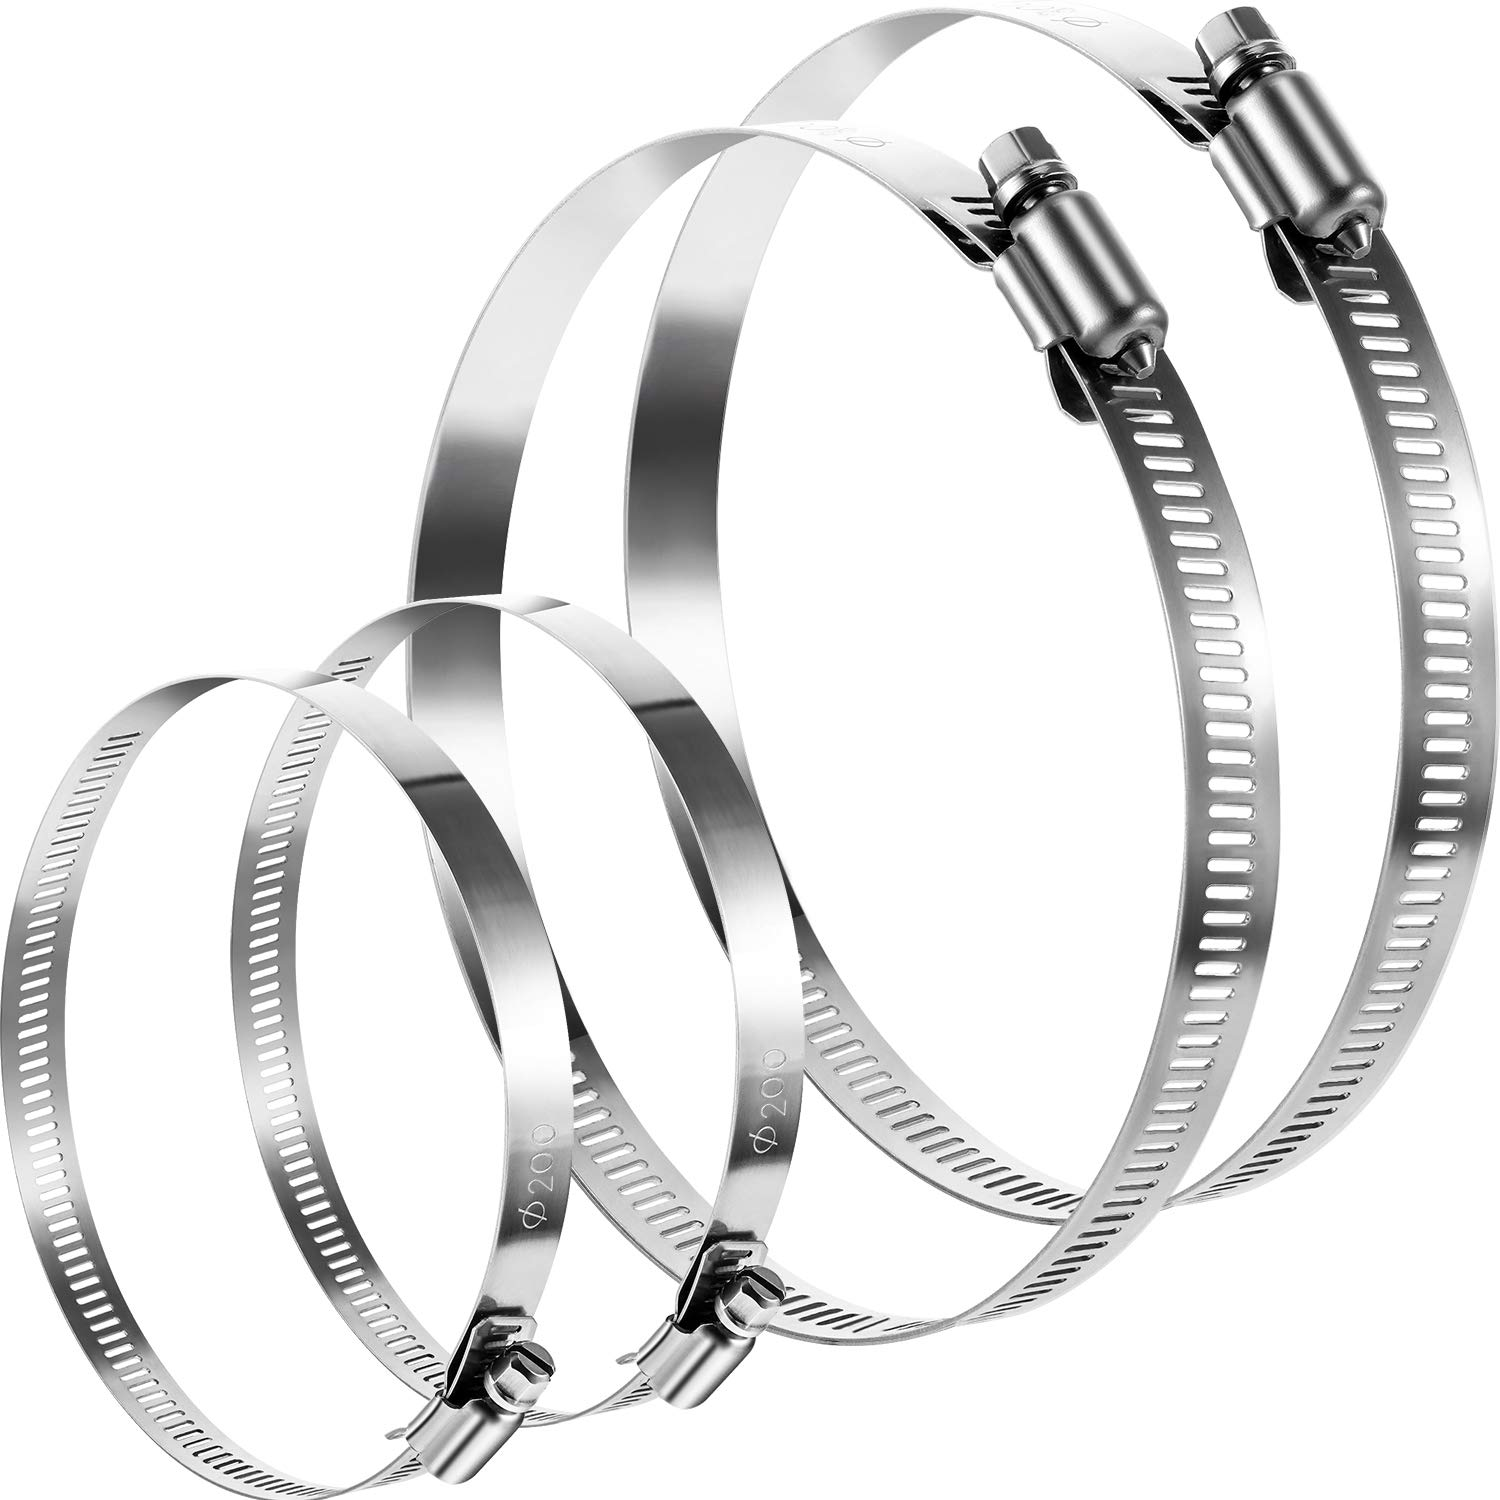 Boao 4 Pieces Adjustable 304 Stainless Steel Duct Clamps Hose Clamp (8 and 12 Inch) by Boao (Image #1)